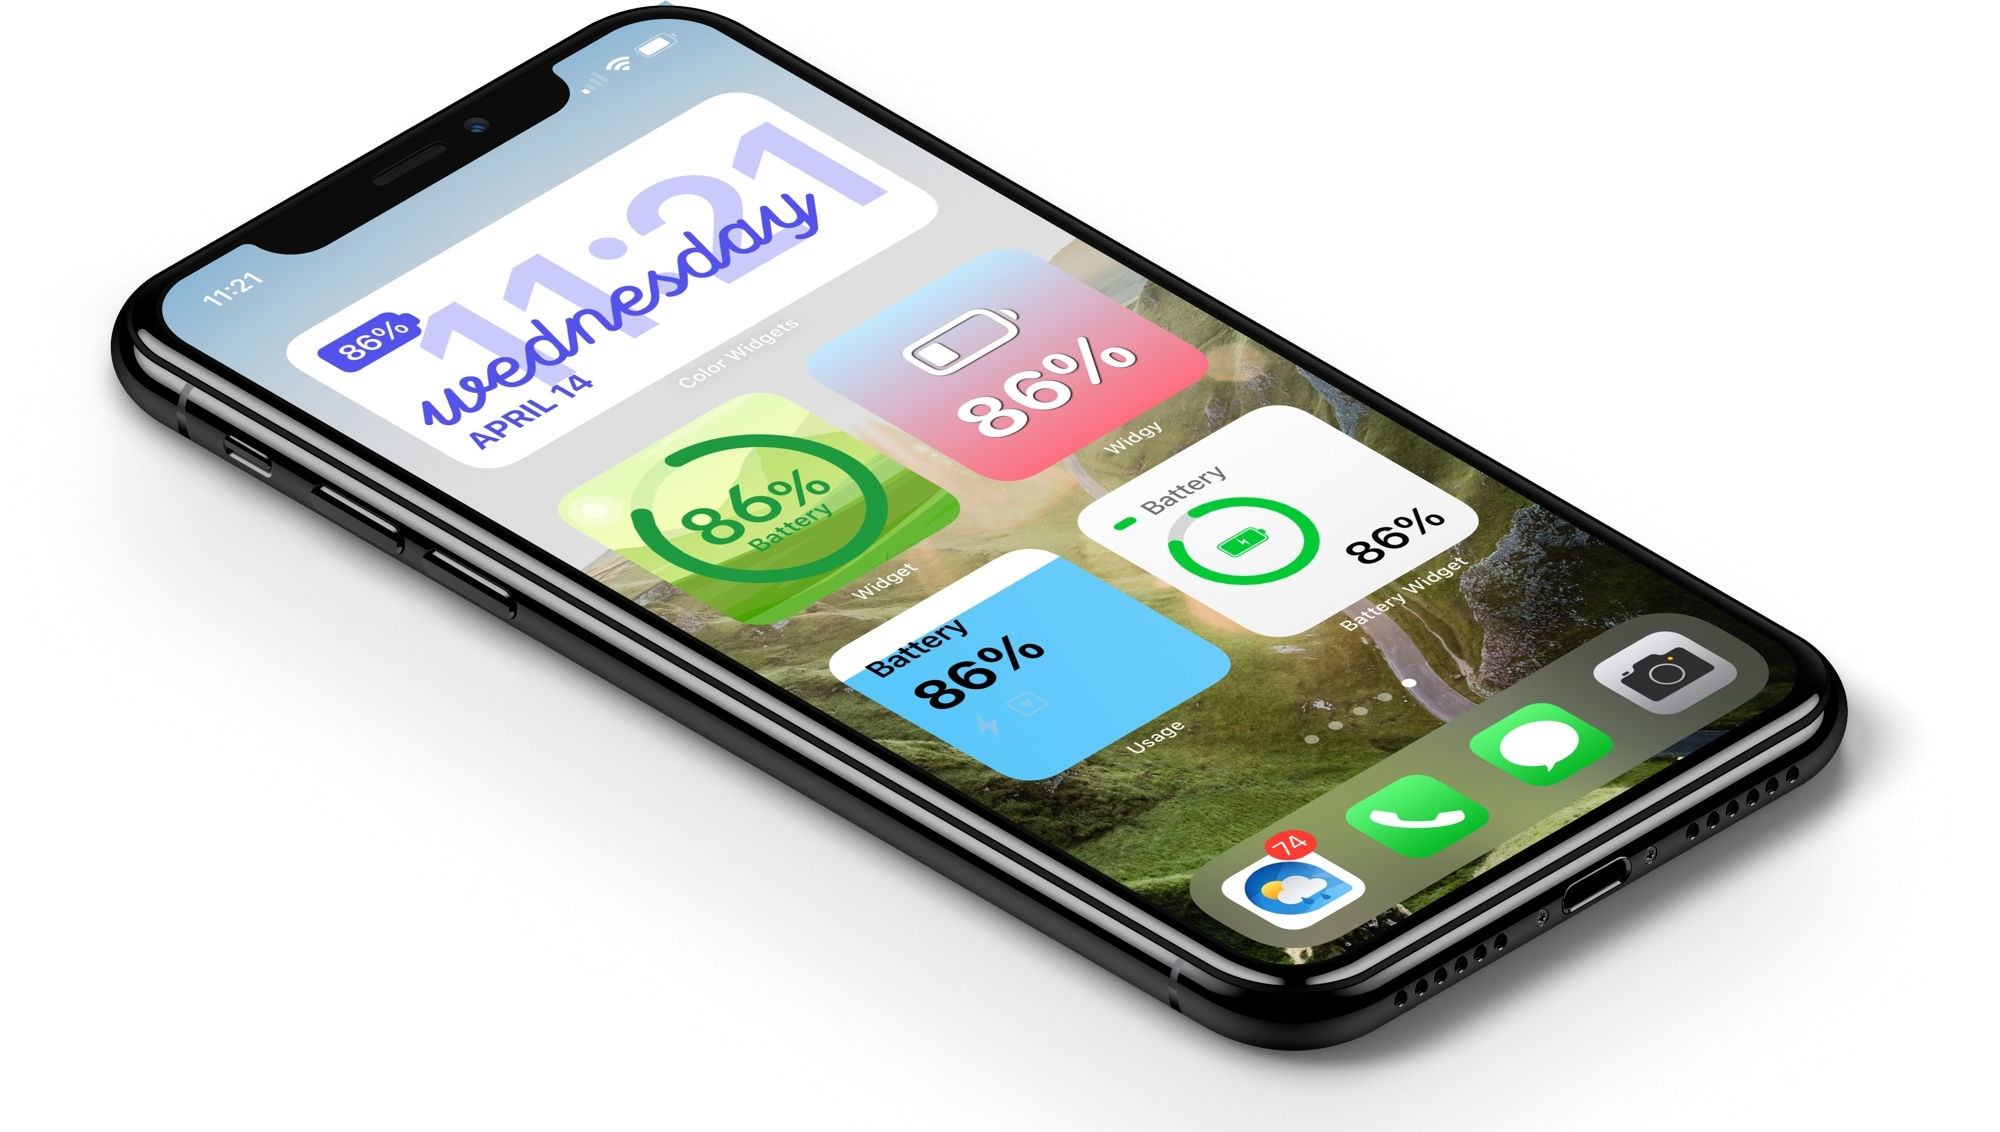 Battery Level Widgets on the iPhone Home Screen